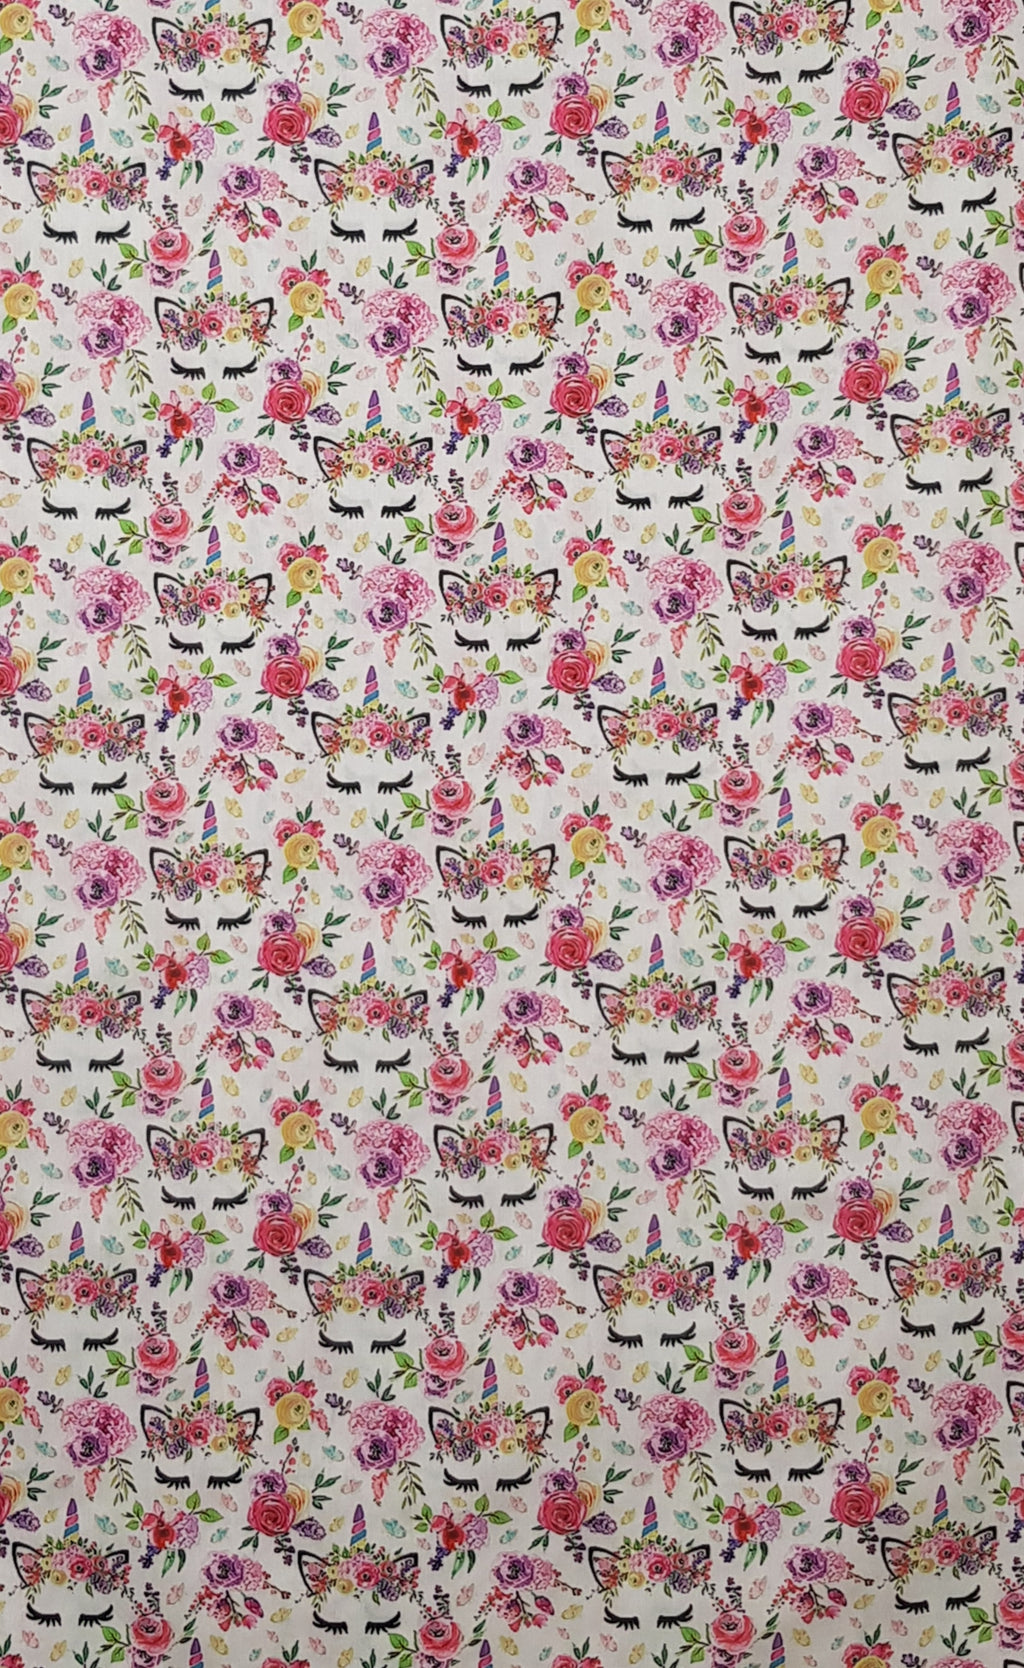 Kitty Cat Eyelashes (1.4m x 1.0m) - Lori's Fabrics & Quilts